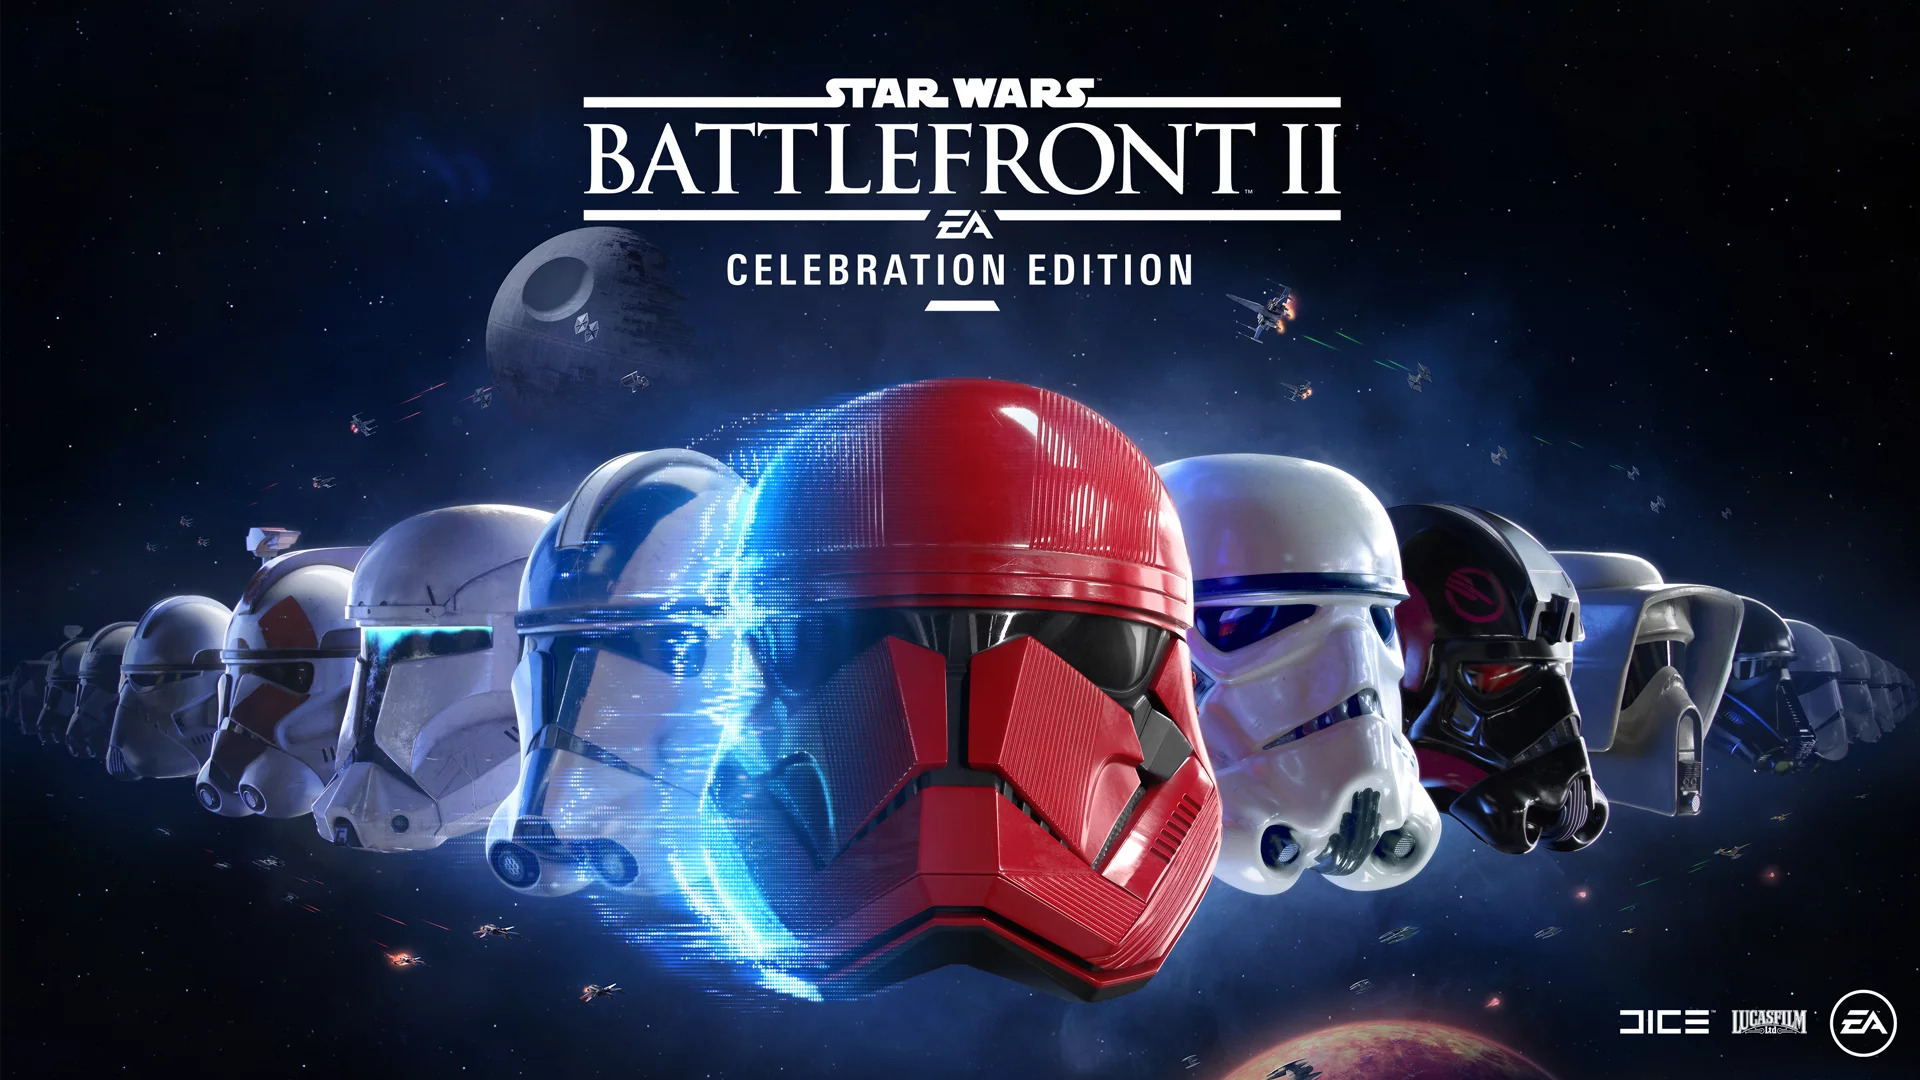 Star Wars Battlefront Ii Update Star Wars Battlefront 2 Celebration Edition 1920x1080 Wallpaper Teahub Io